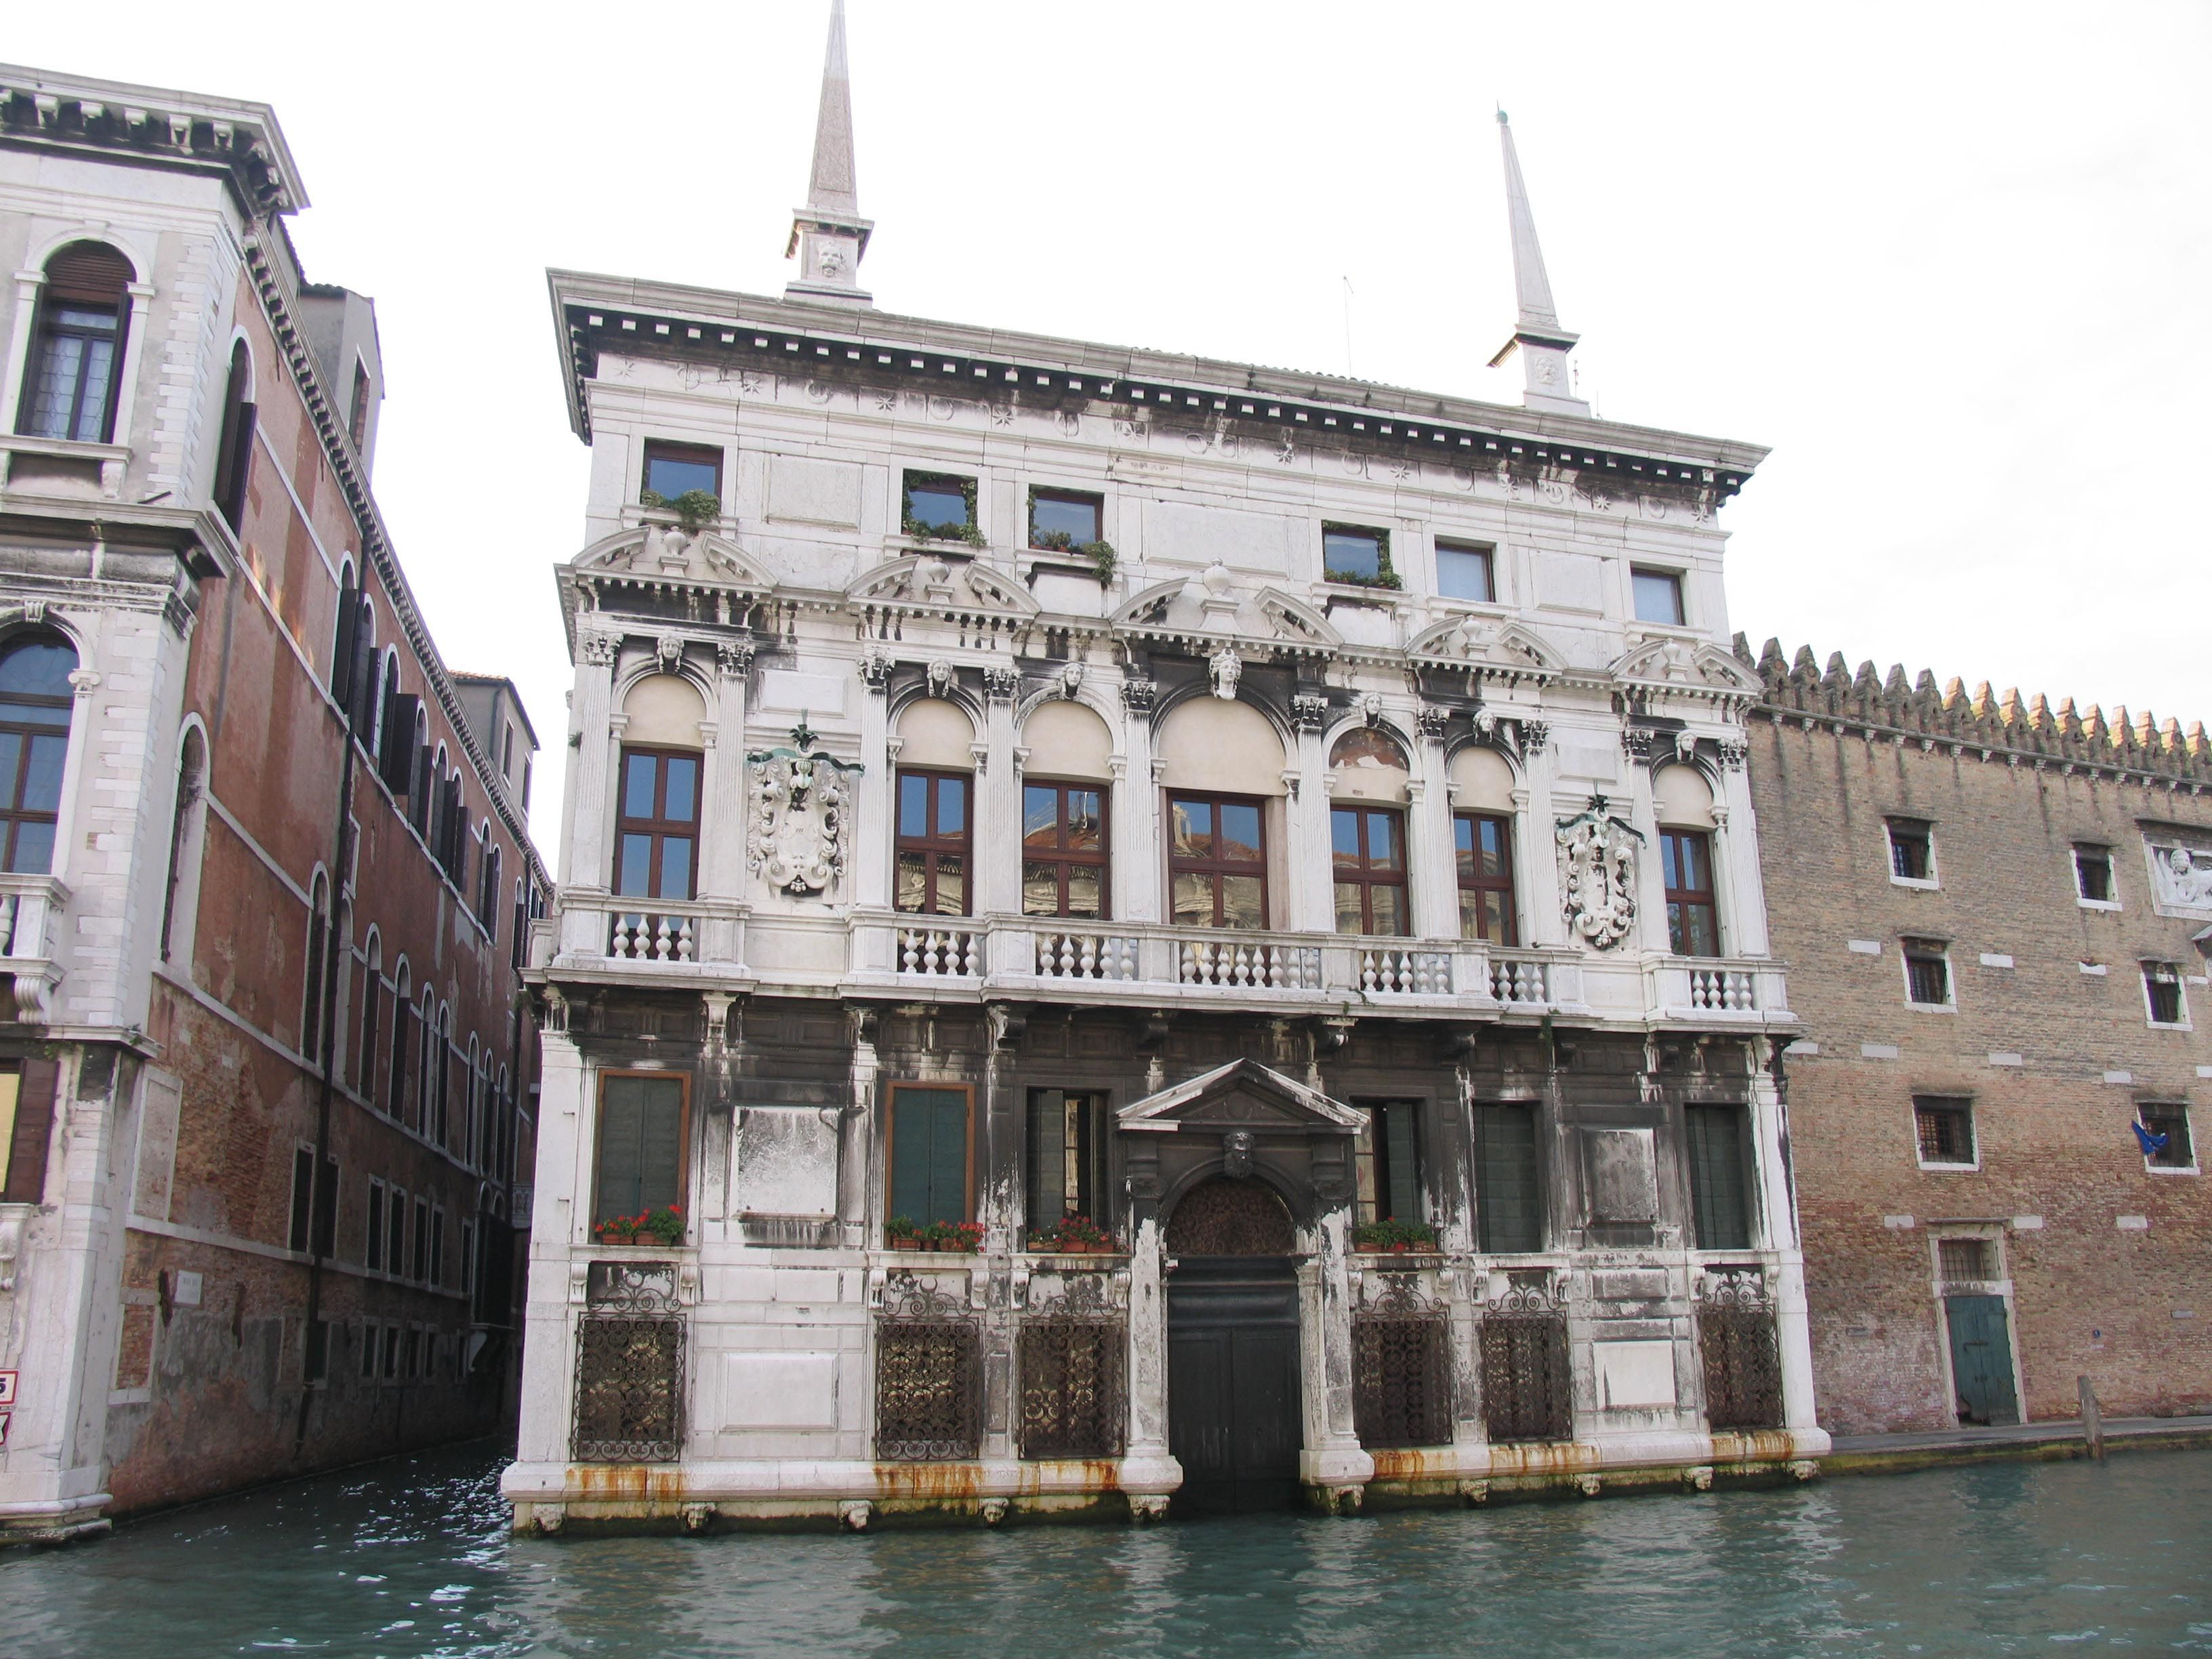 palazzo belloni battagia. a palace on the grand canal built in the